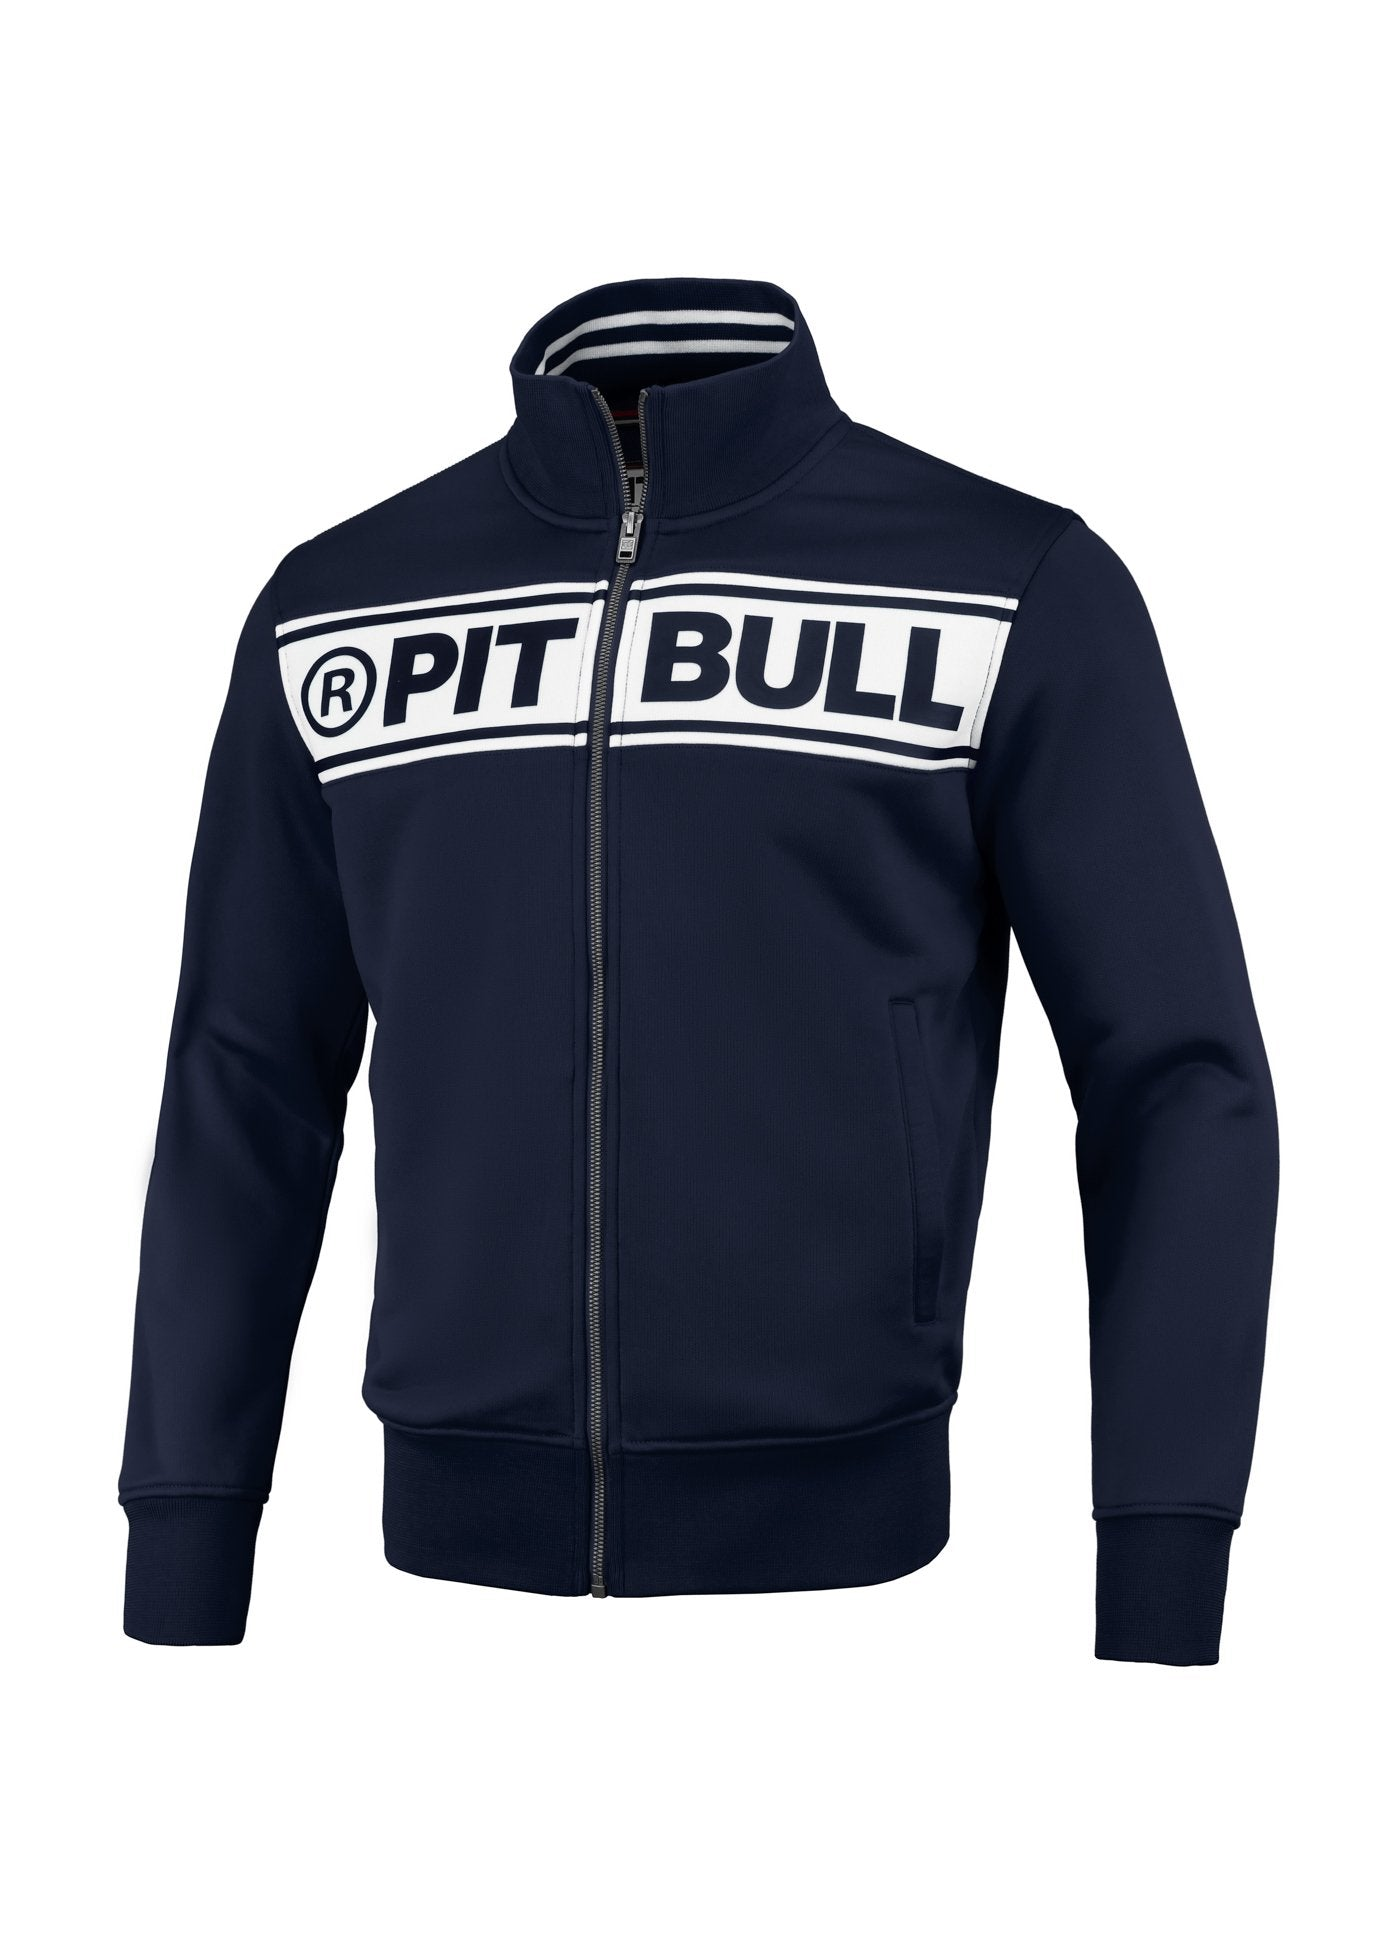 Oldschool Track Jacket Chest Logo Dark Navy Off White - Pitbull West Coast  UK Store